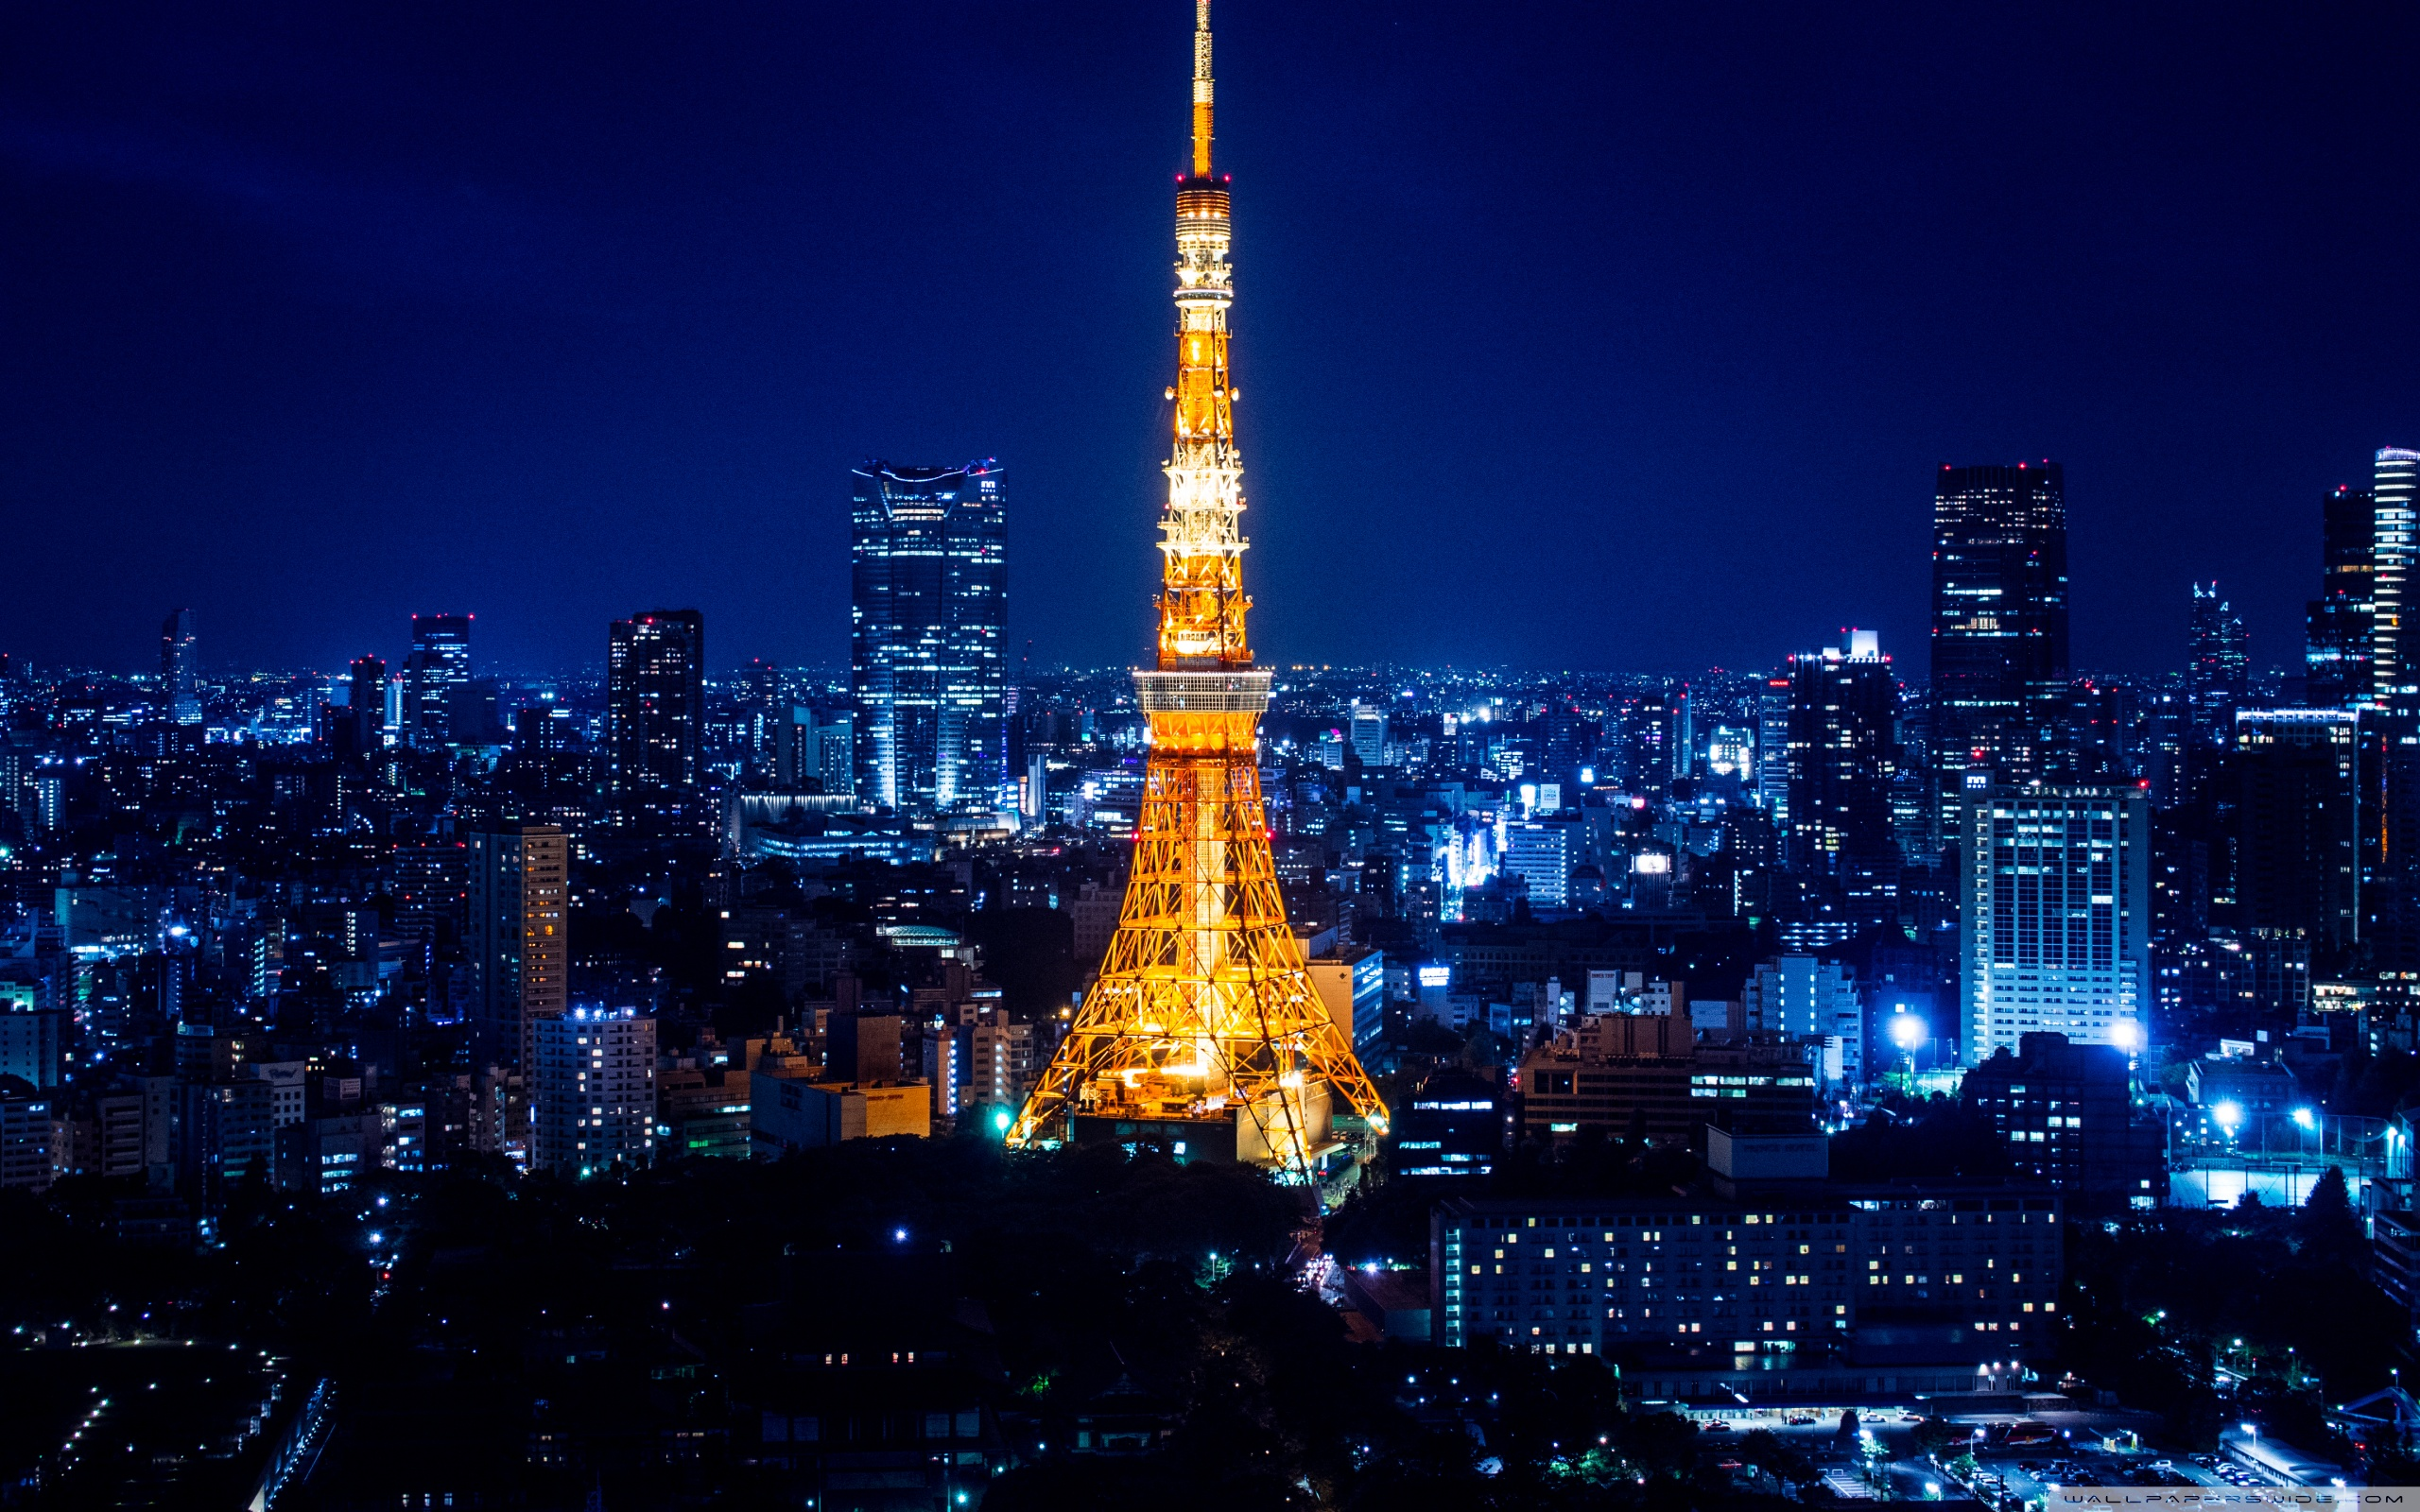 http://wallpup.com/wp-content/uploads/2013/01/Tokyo-Tower-At-Night-Wallpaper.jpg